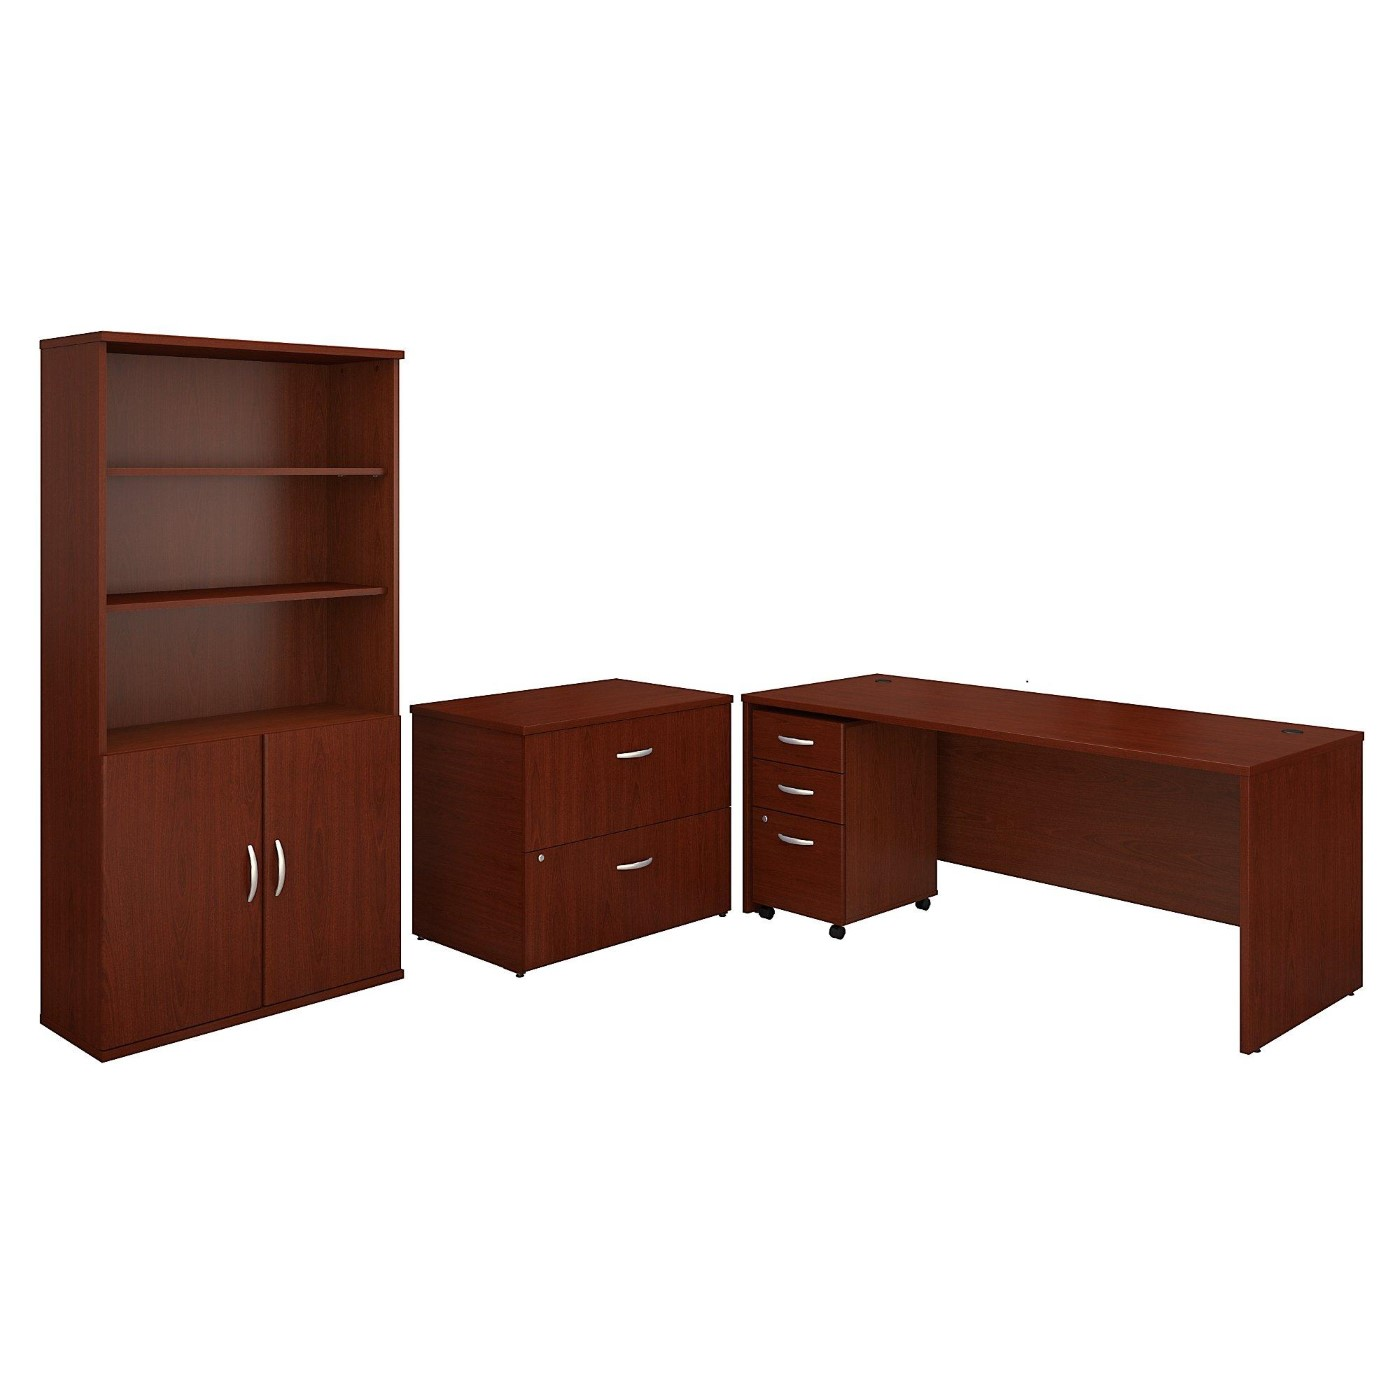 <font color=#c60><b>BUSH BUSINESS FURNITURE SERIES C 72W OFFICE DESK WITH BOOKCASE AND FILE CABINETS. FREE SHIPPING</font></b>